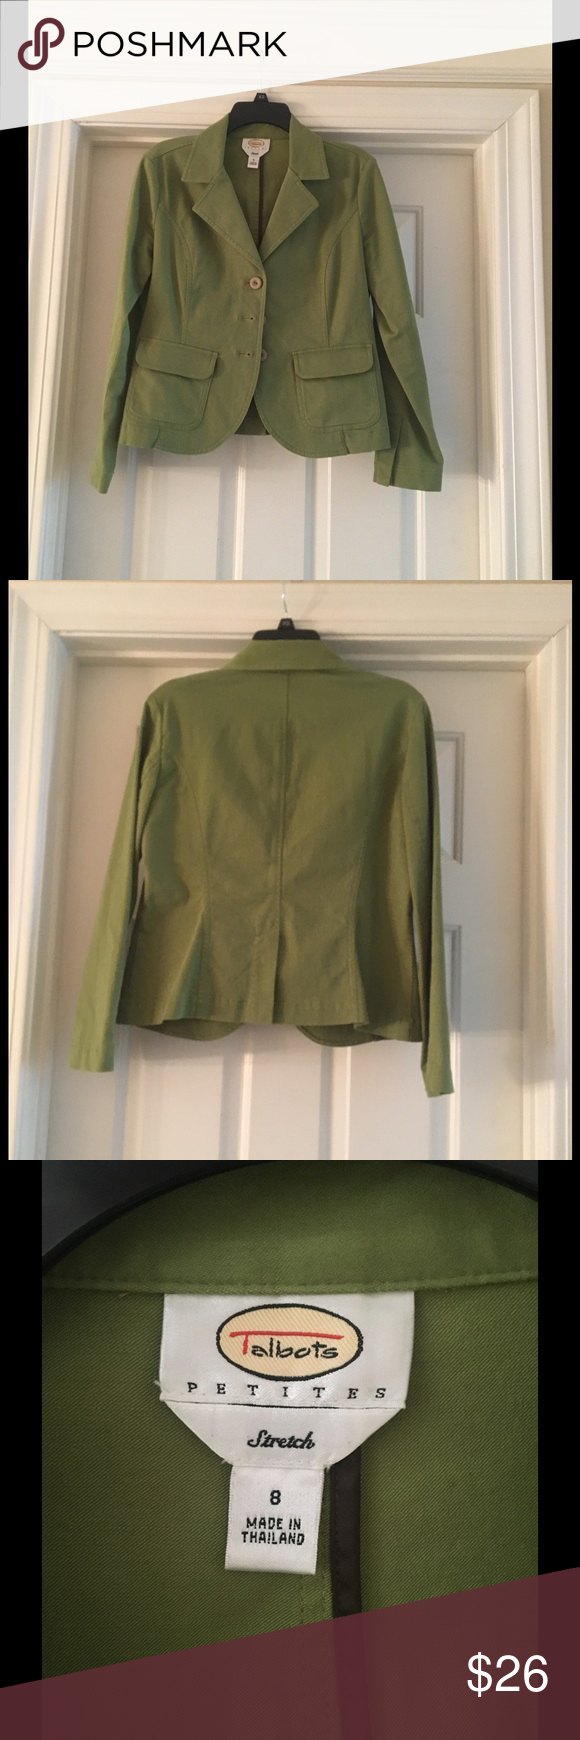 Talbots green petite blazer Excellent condition only work once or twice. There button blazer. Size 8 petite Talbots Jackets & Coats Blazers